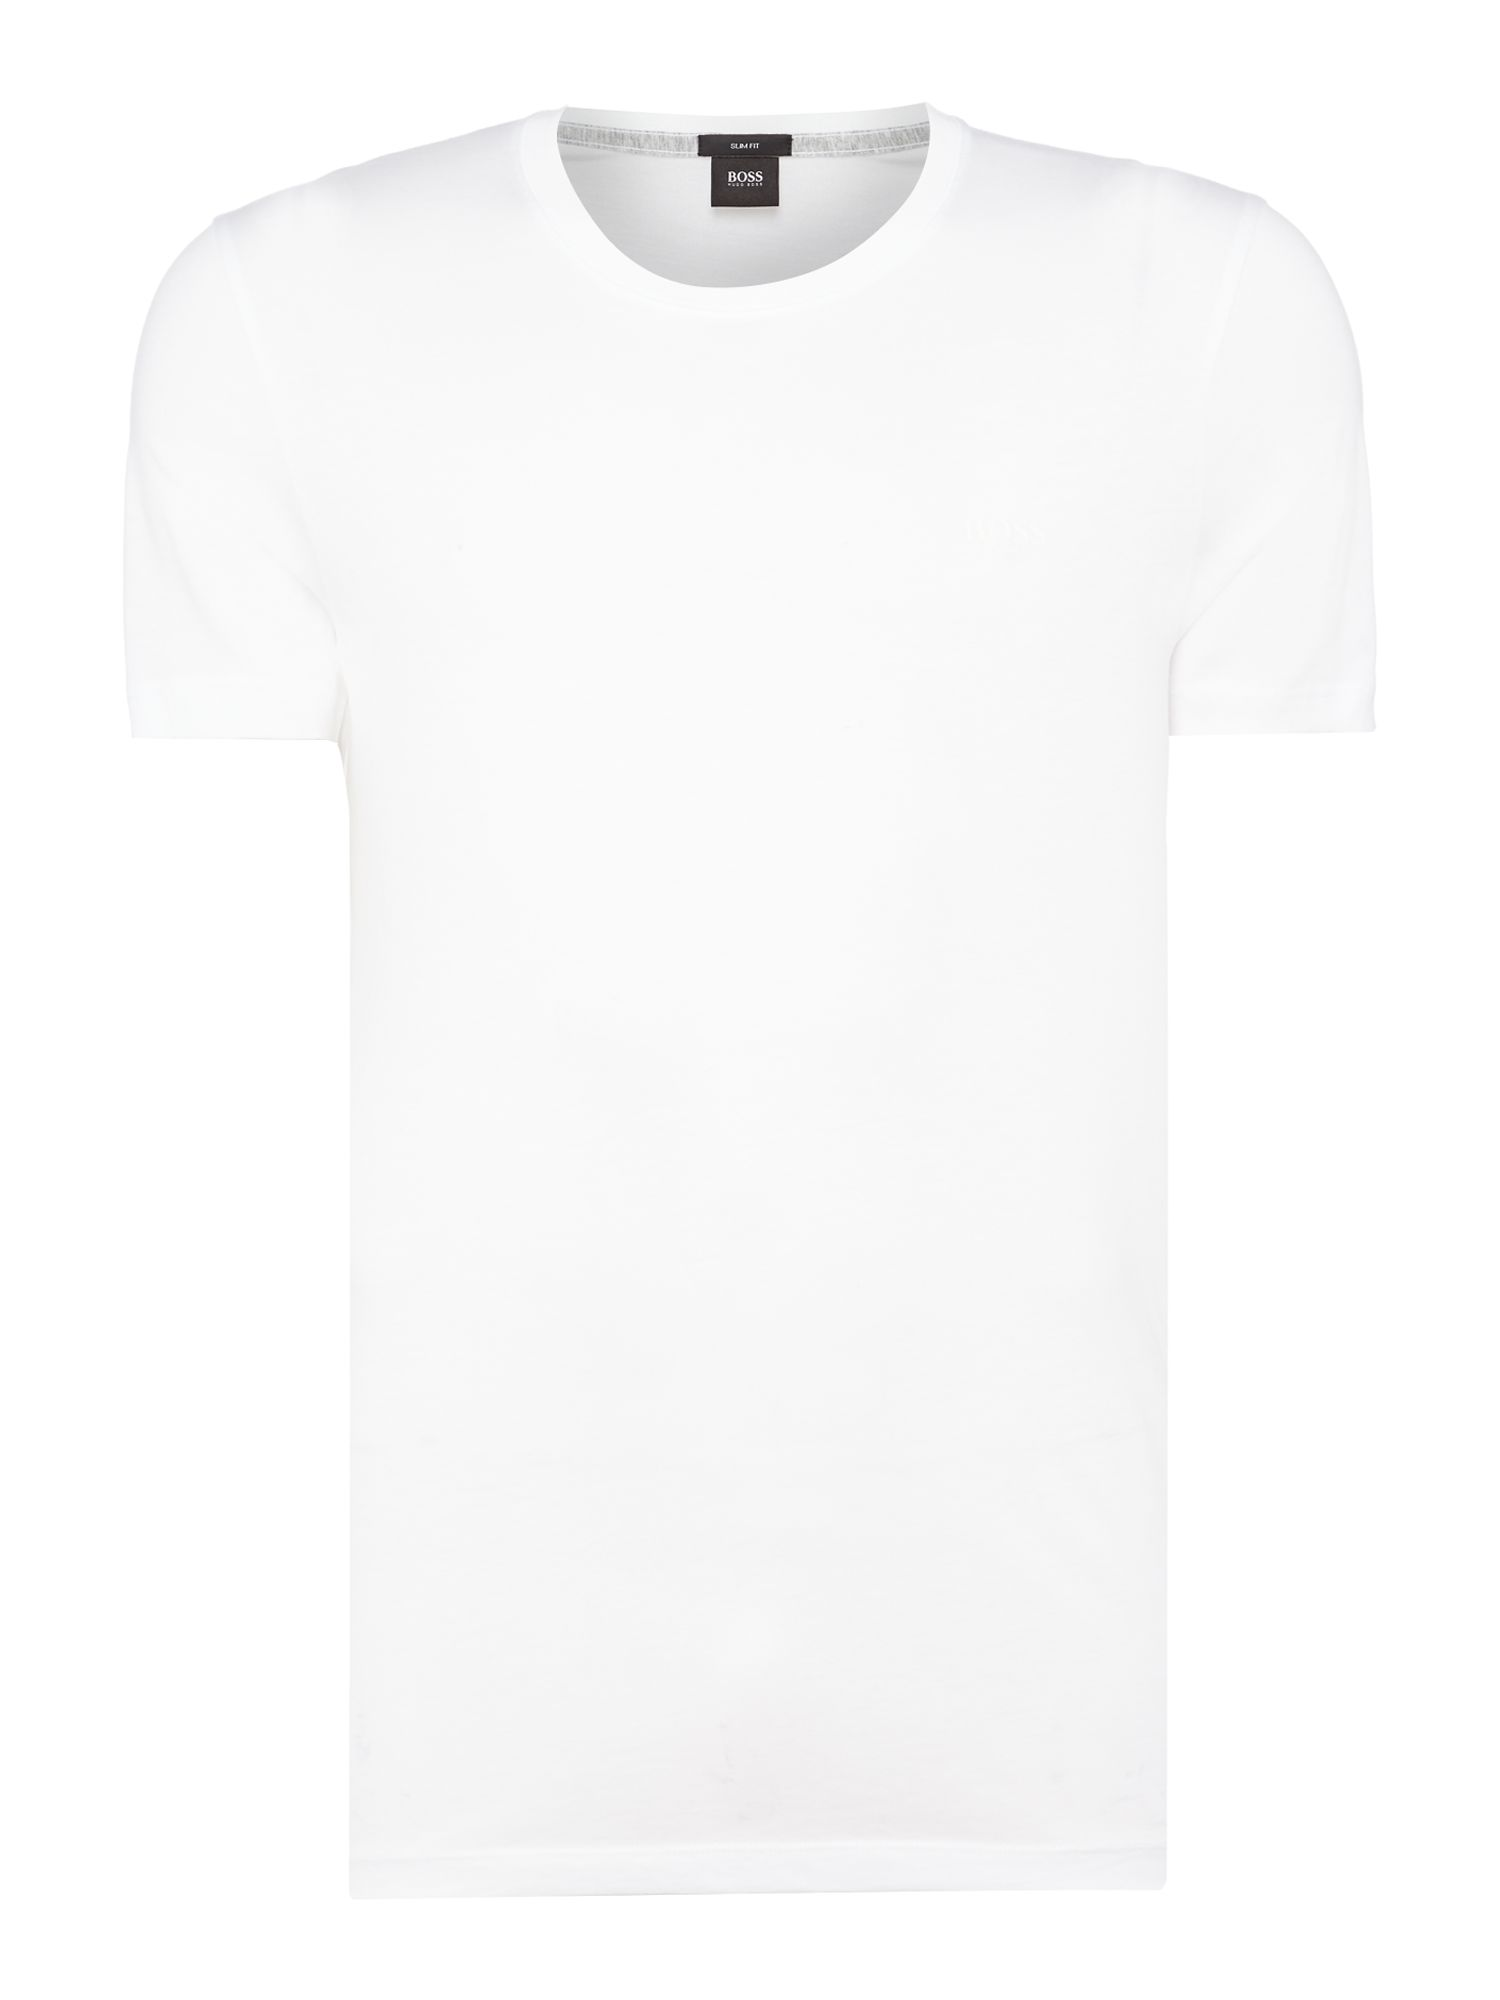 Men's Hugo Boss Tessler crew neck liquid cotton logo t-shirt, White